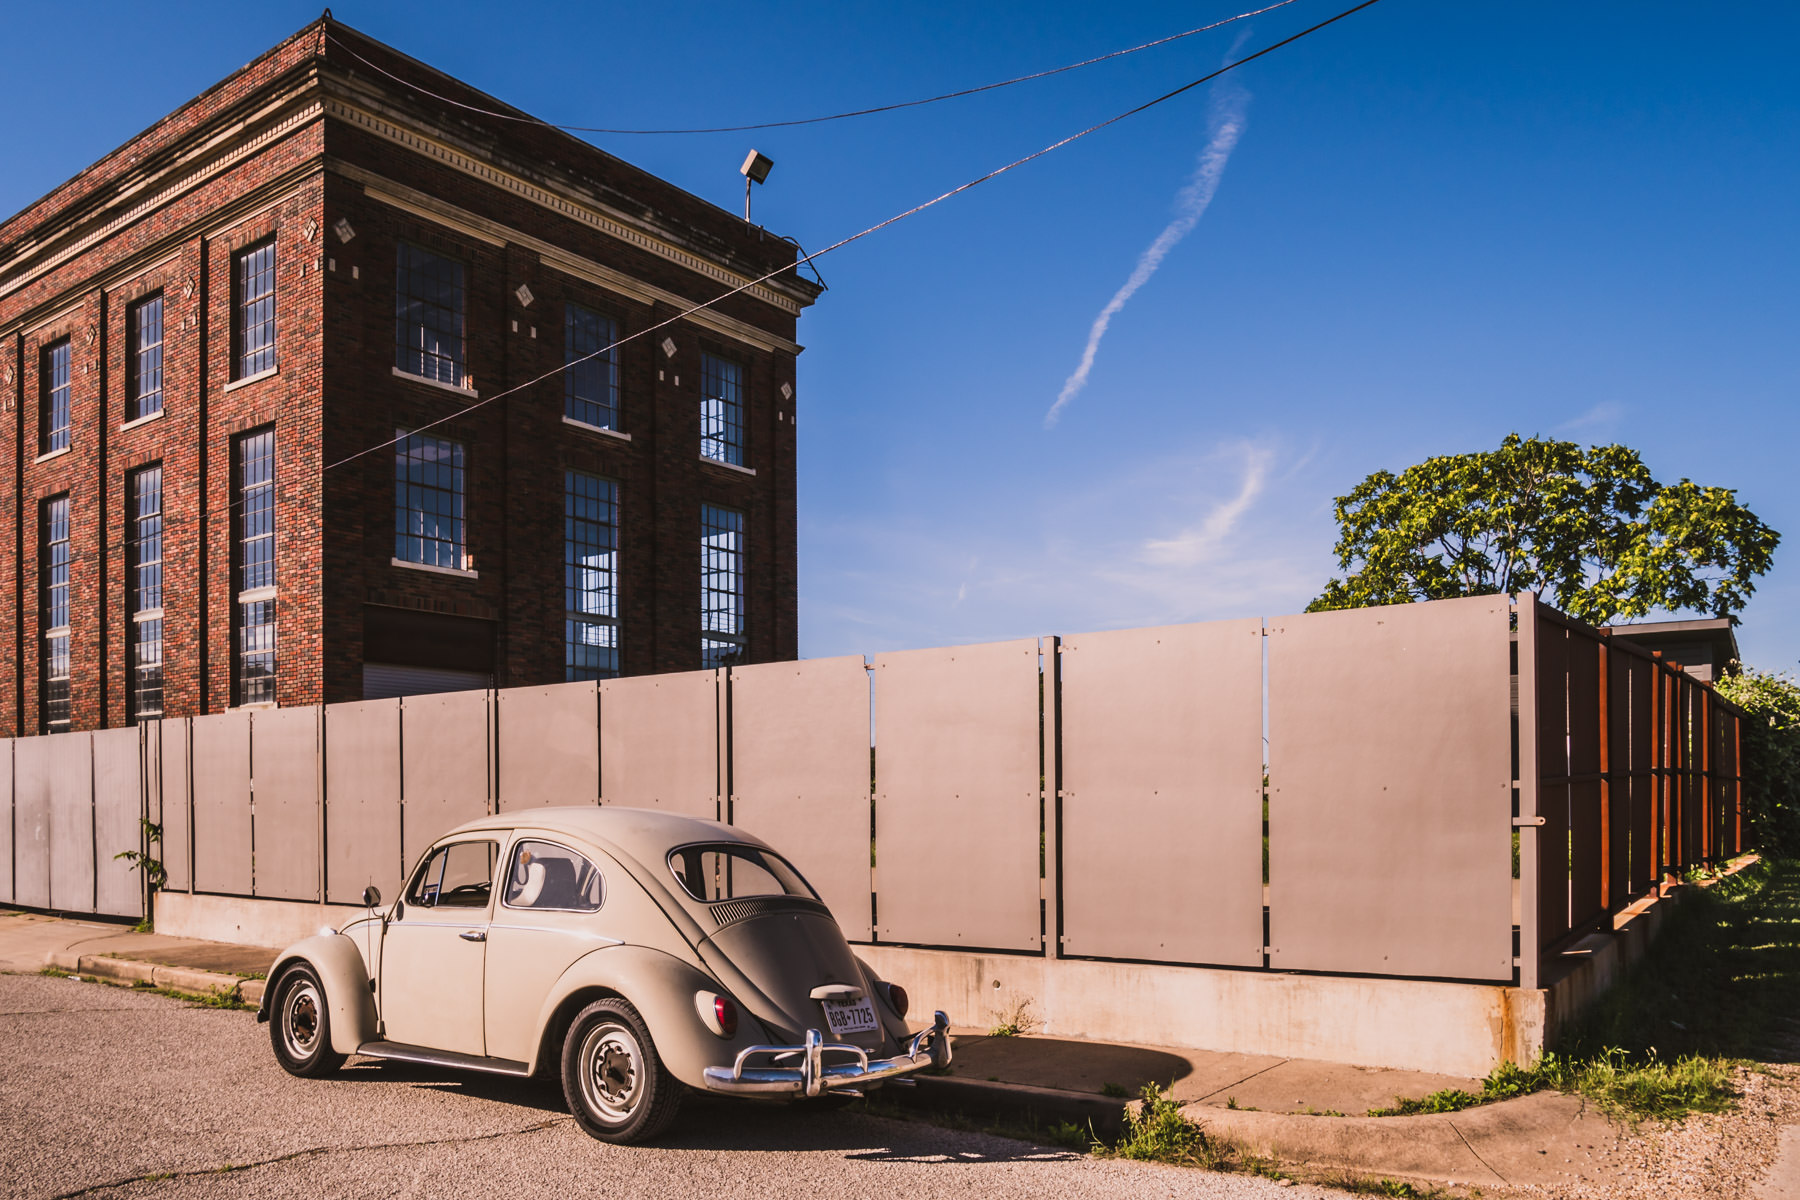 A classic Volkswagen Beetle, parked on a street in Dallas' Cedars Neighborhood near a historic Dallas Power & Light substation.